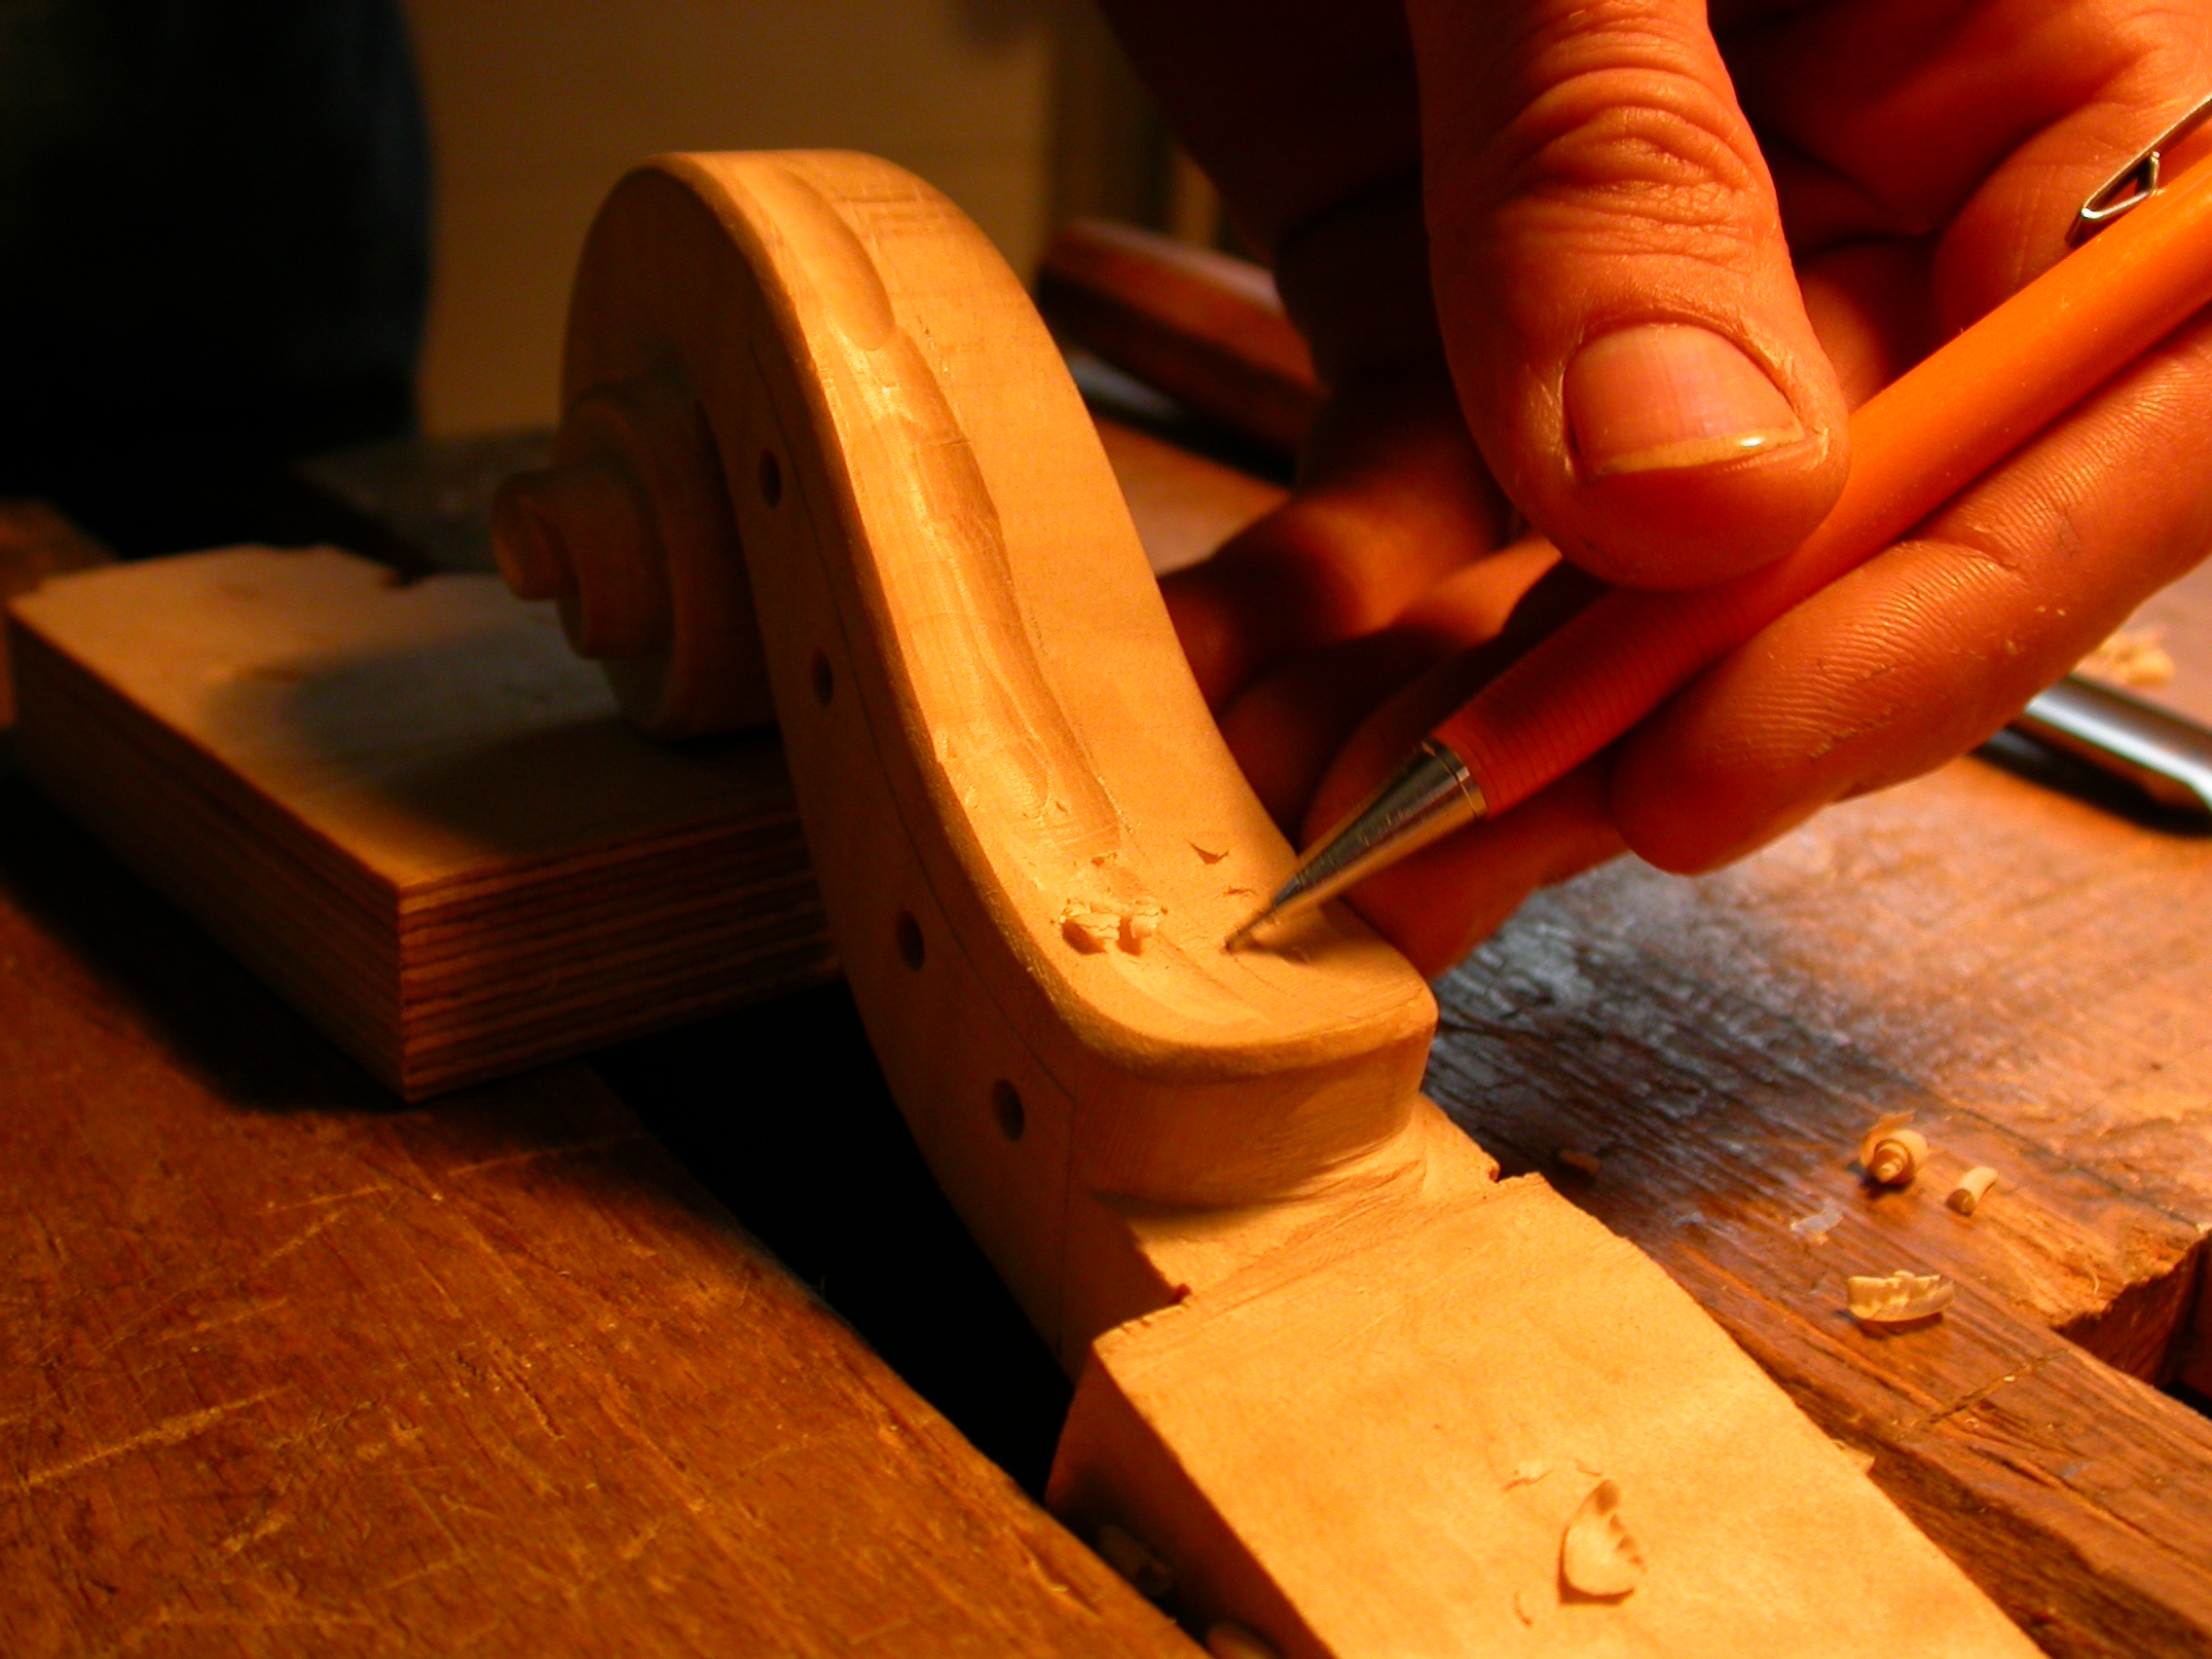 paul violin in the making wood crafy craftsman pen hand